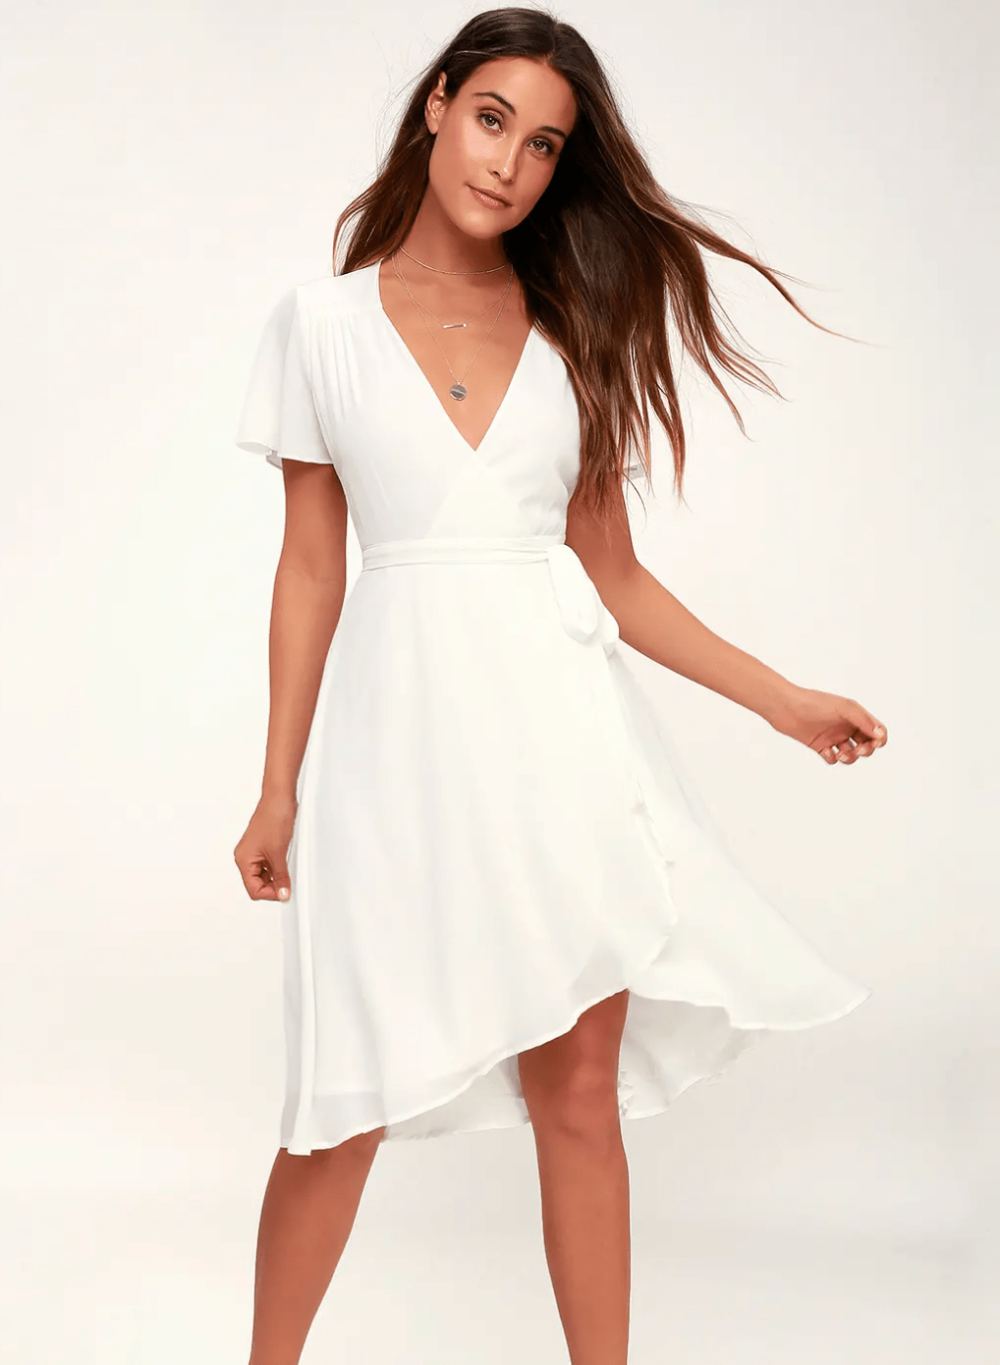 15 Incredibly Cute Graduation Dresses For 2021 College Fashion In 2021 College Dress Graduation Dress Graduation Outfit [ 1365 x 1000 Pixel ]